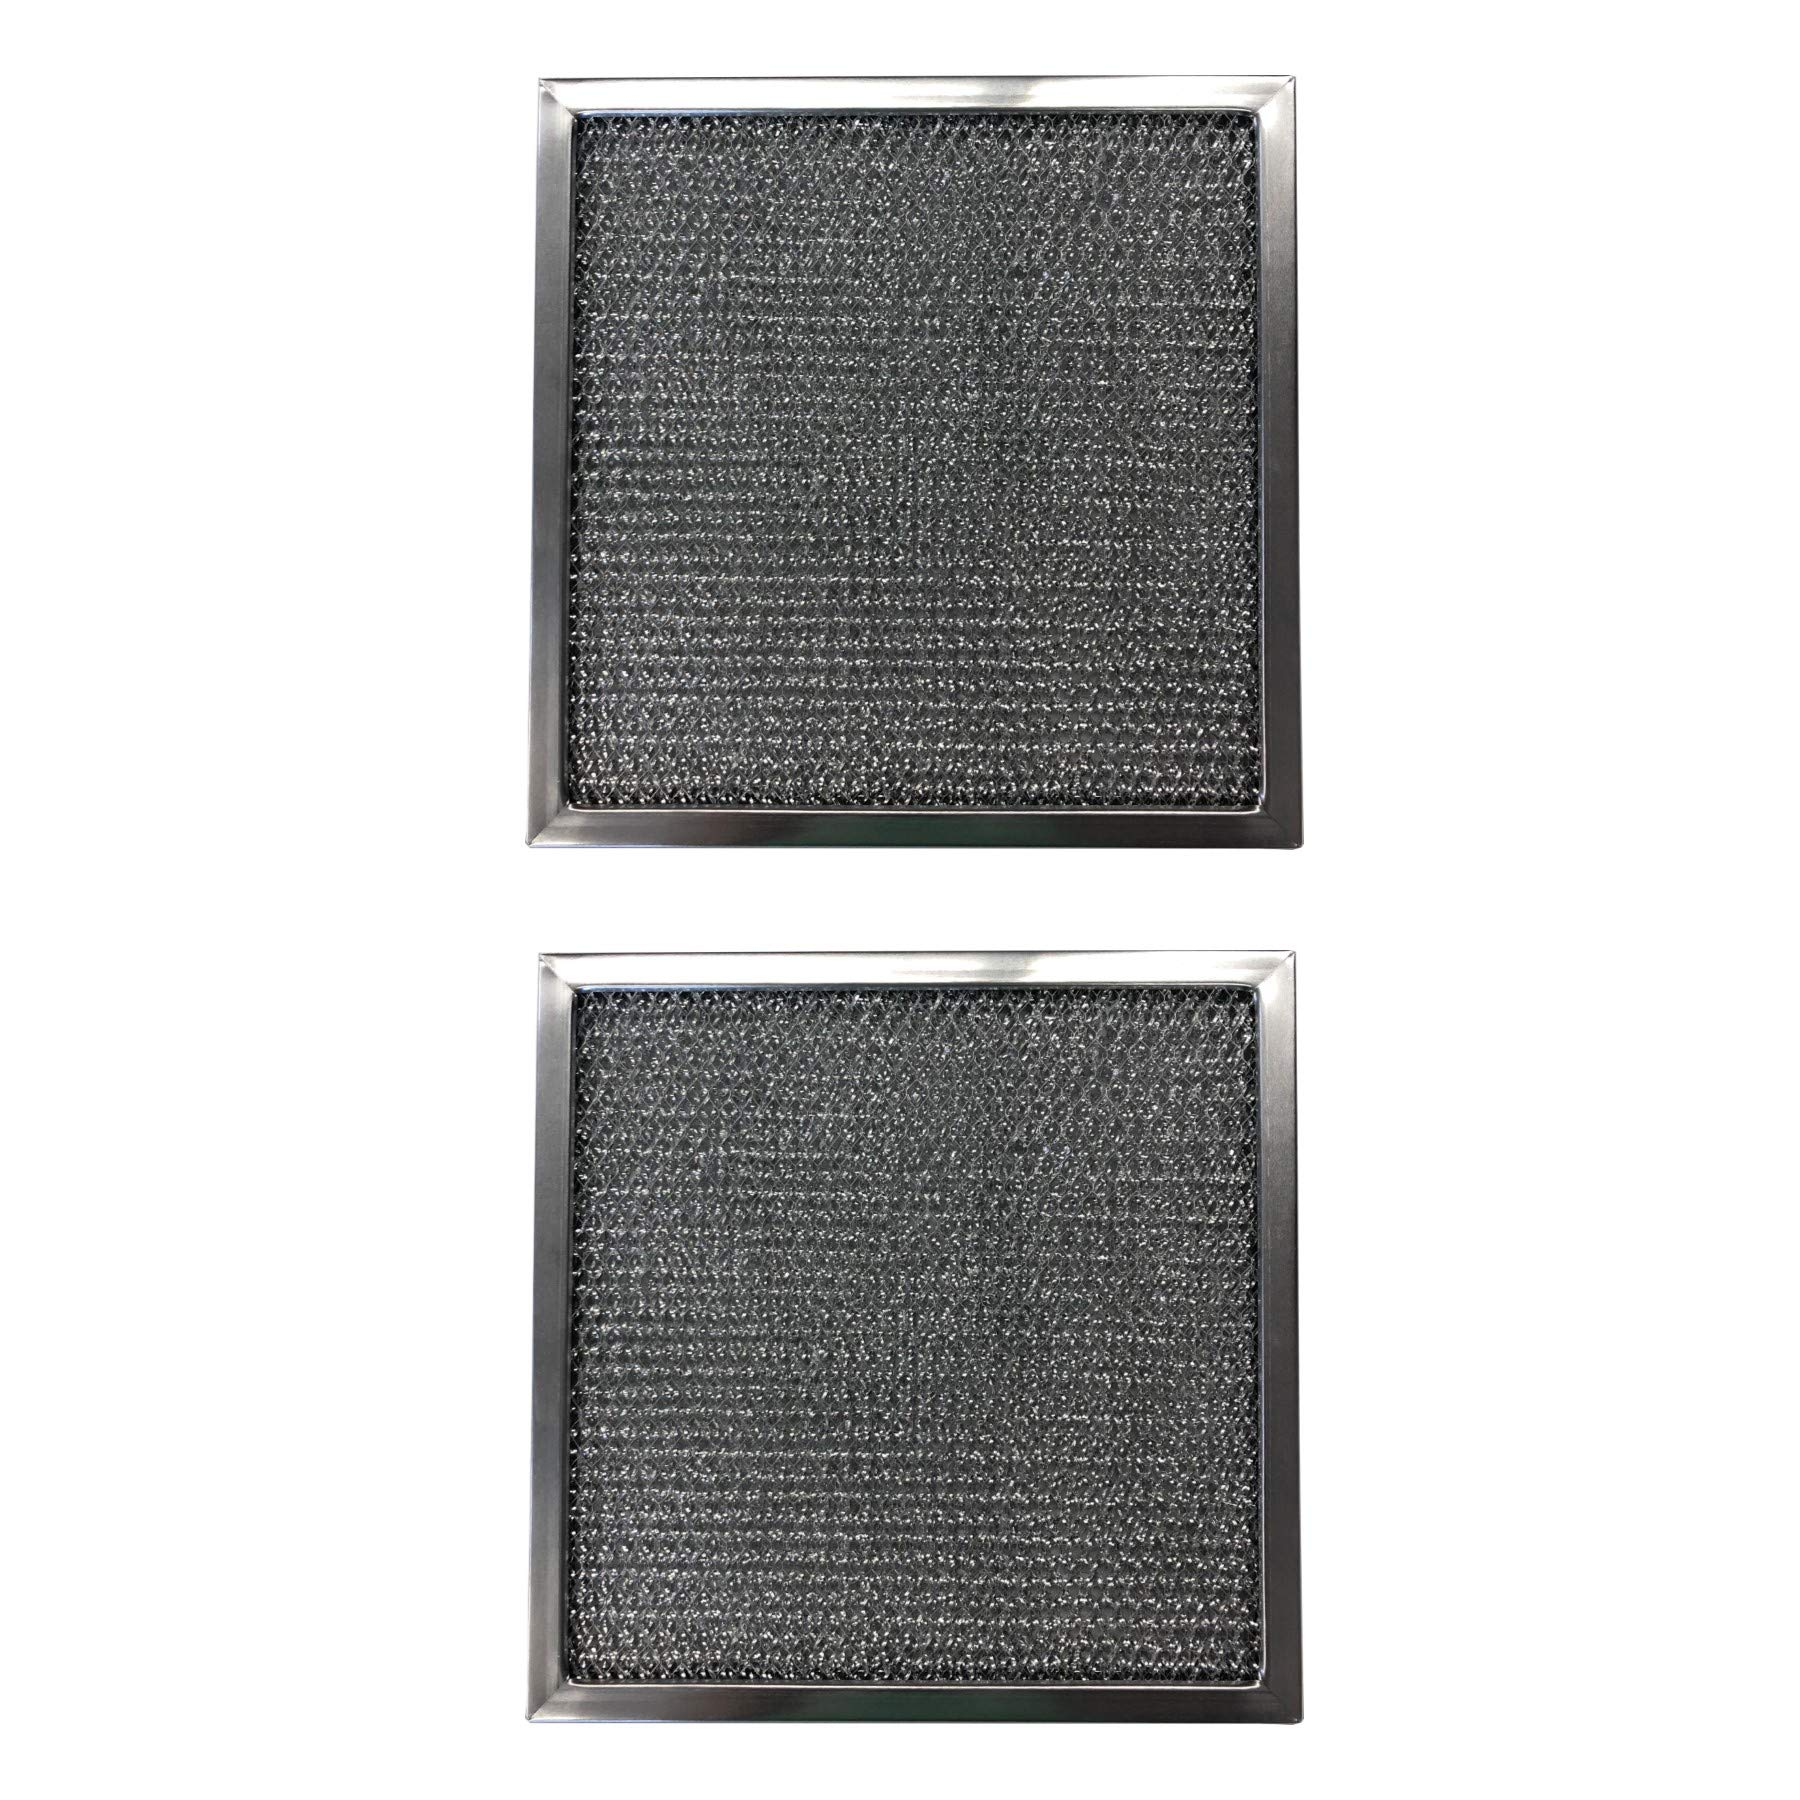 Replacement Aluminum Filters Compatible with GE WB02X1434, GE WB2X1434,G 8547,  7 5/8 X 7 5/8 X 3/8